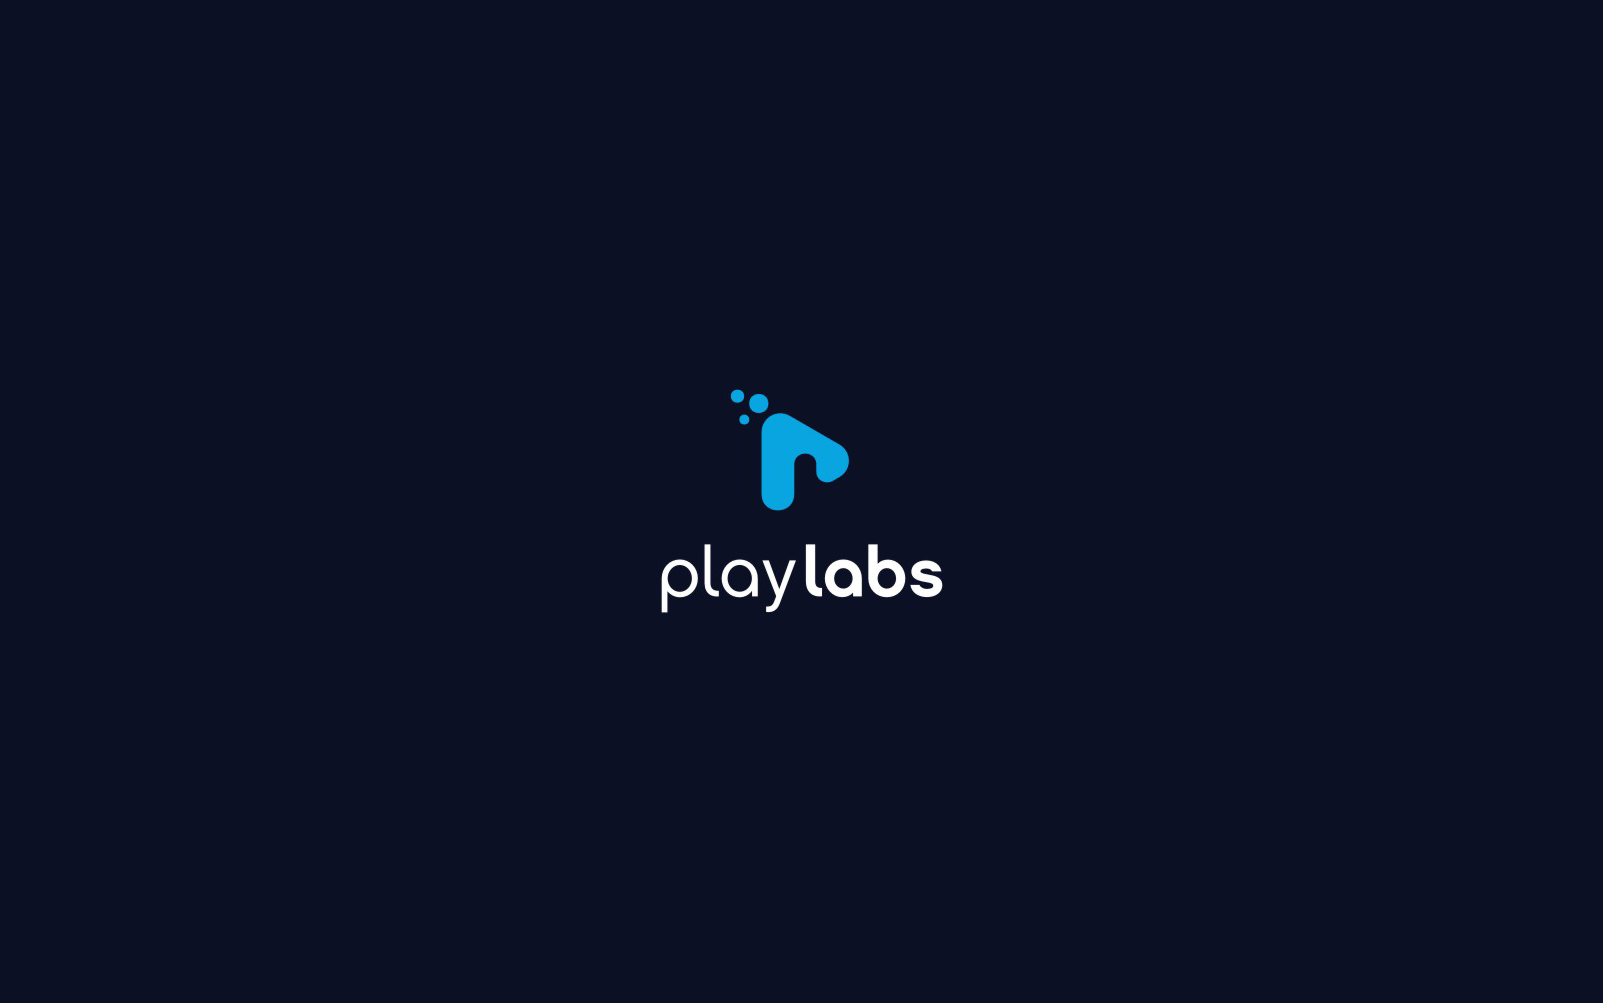 Here's The First VR and AR Startups Accepted Into MIT's Play Labs Accelerator